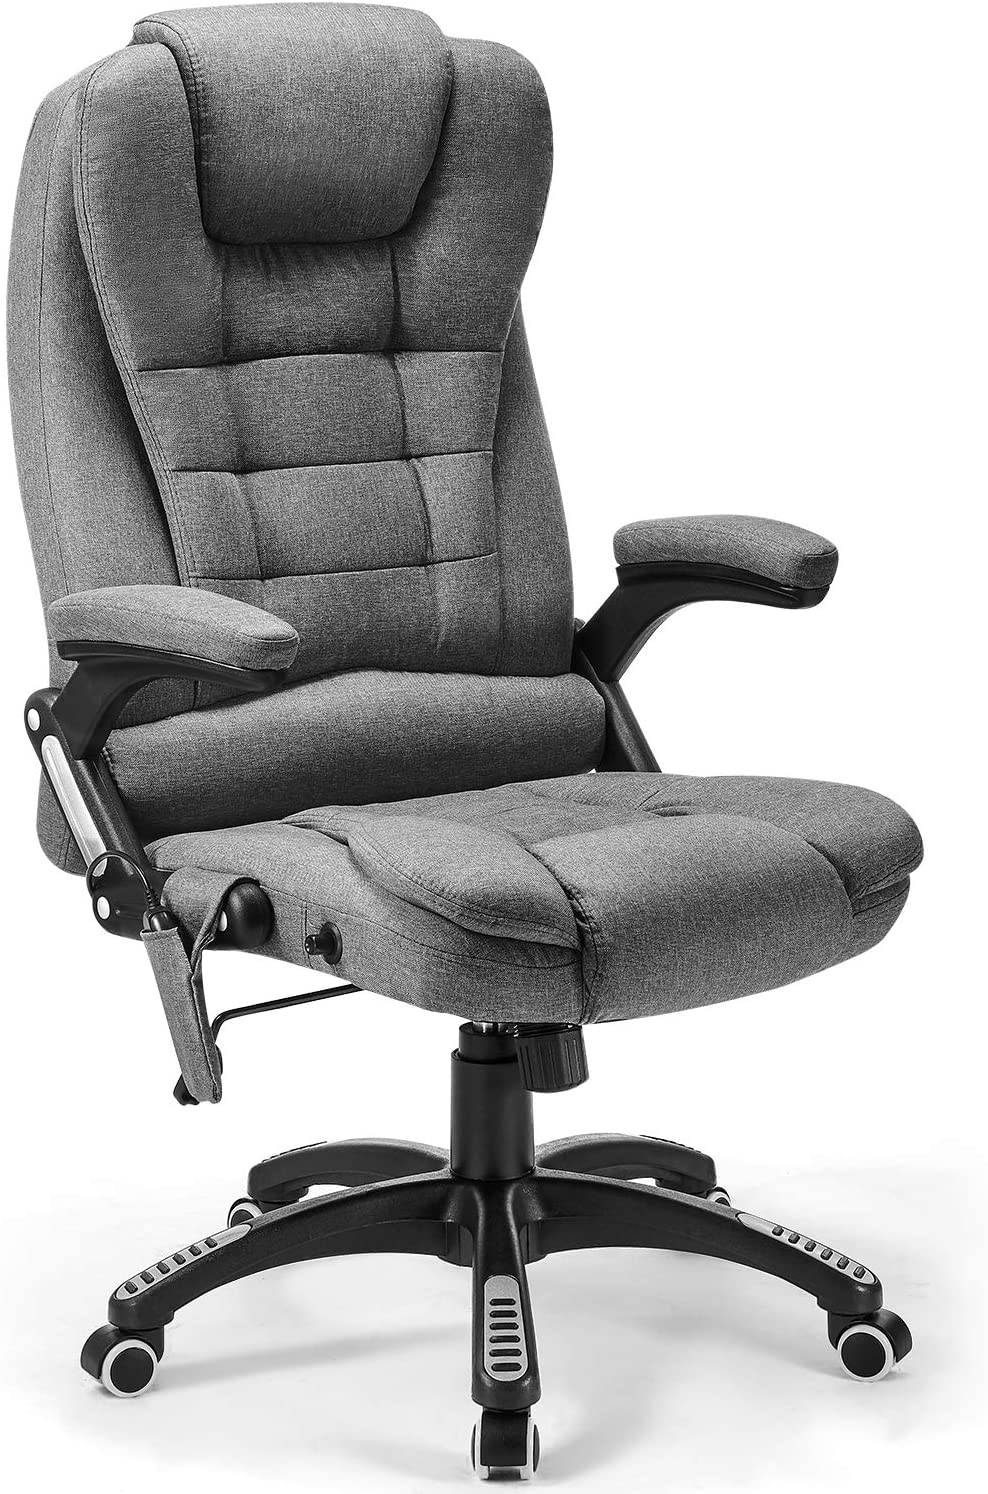 Massage Office Chair, Kealive Thick High Back Fabric Executive Computer Desk Chair, Adjustable Tilt Angle Ergonomic Reclining Chair, Rolling Swivel Chair, Grey